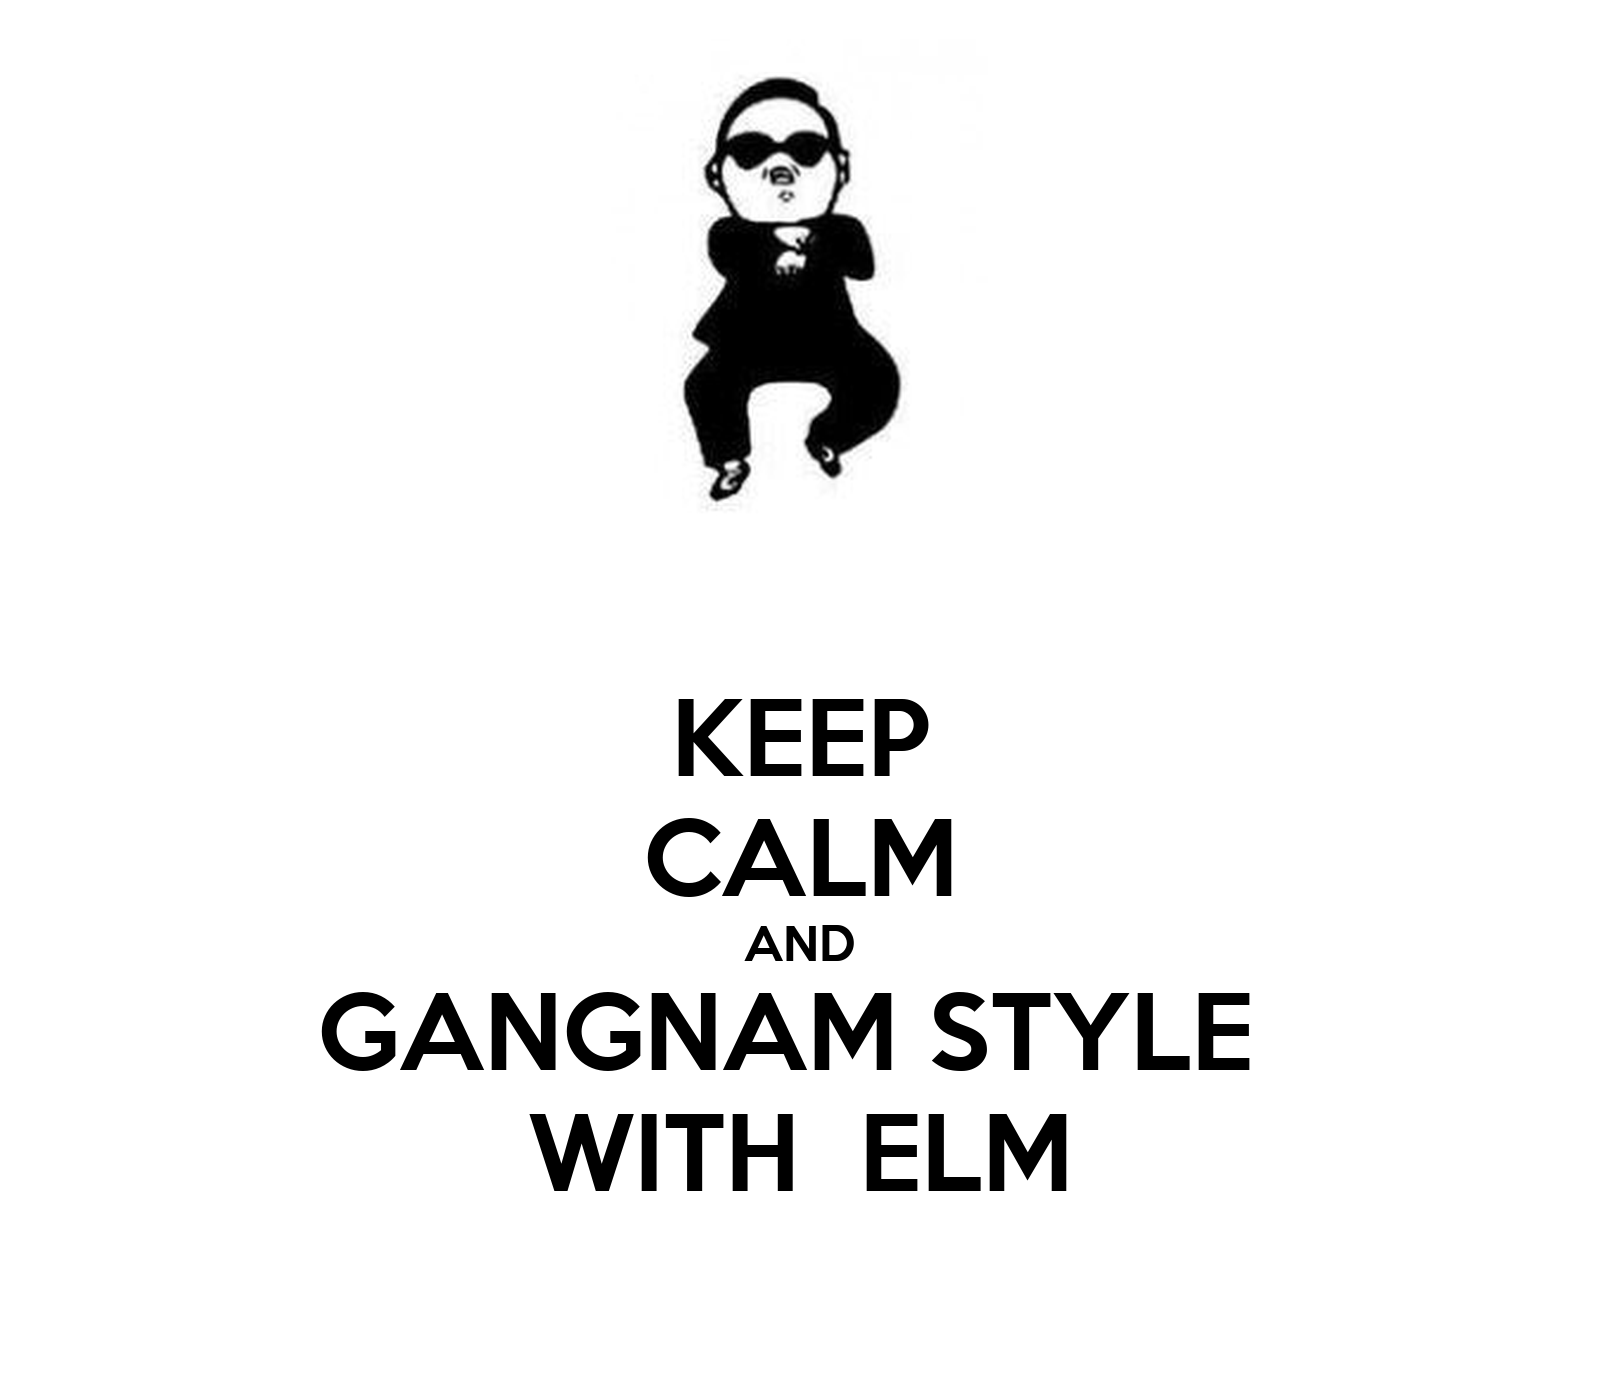 KEEP CALM AND GANGNAM STYLE WITH ELM - KEEP CALM AND CARRY ON